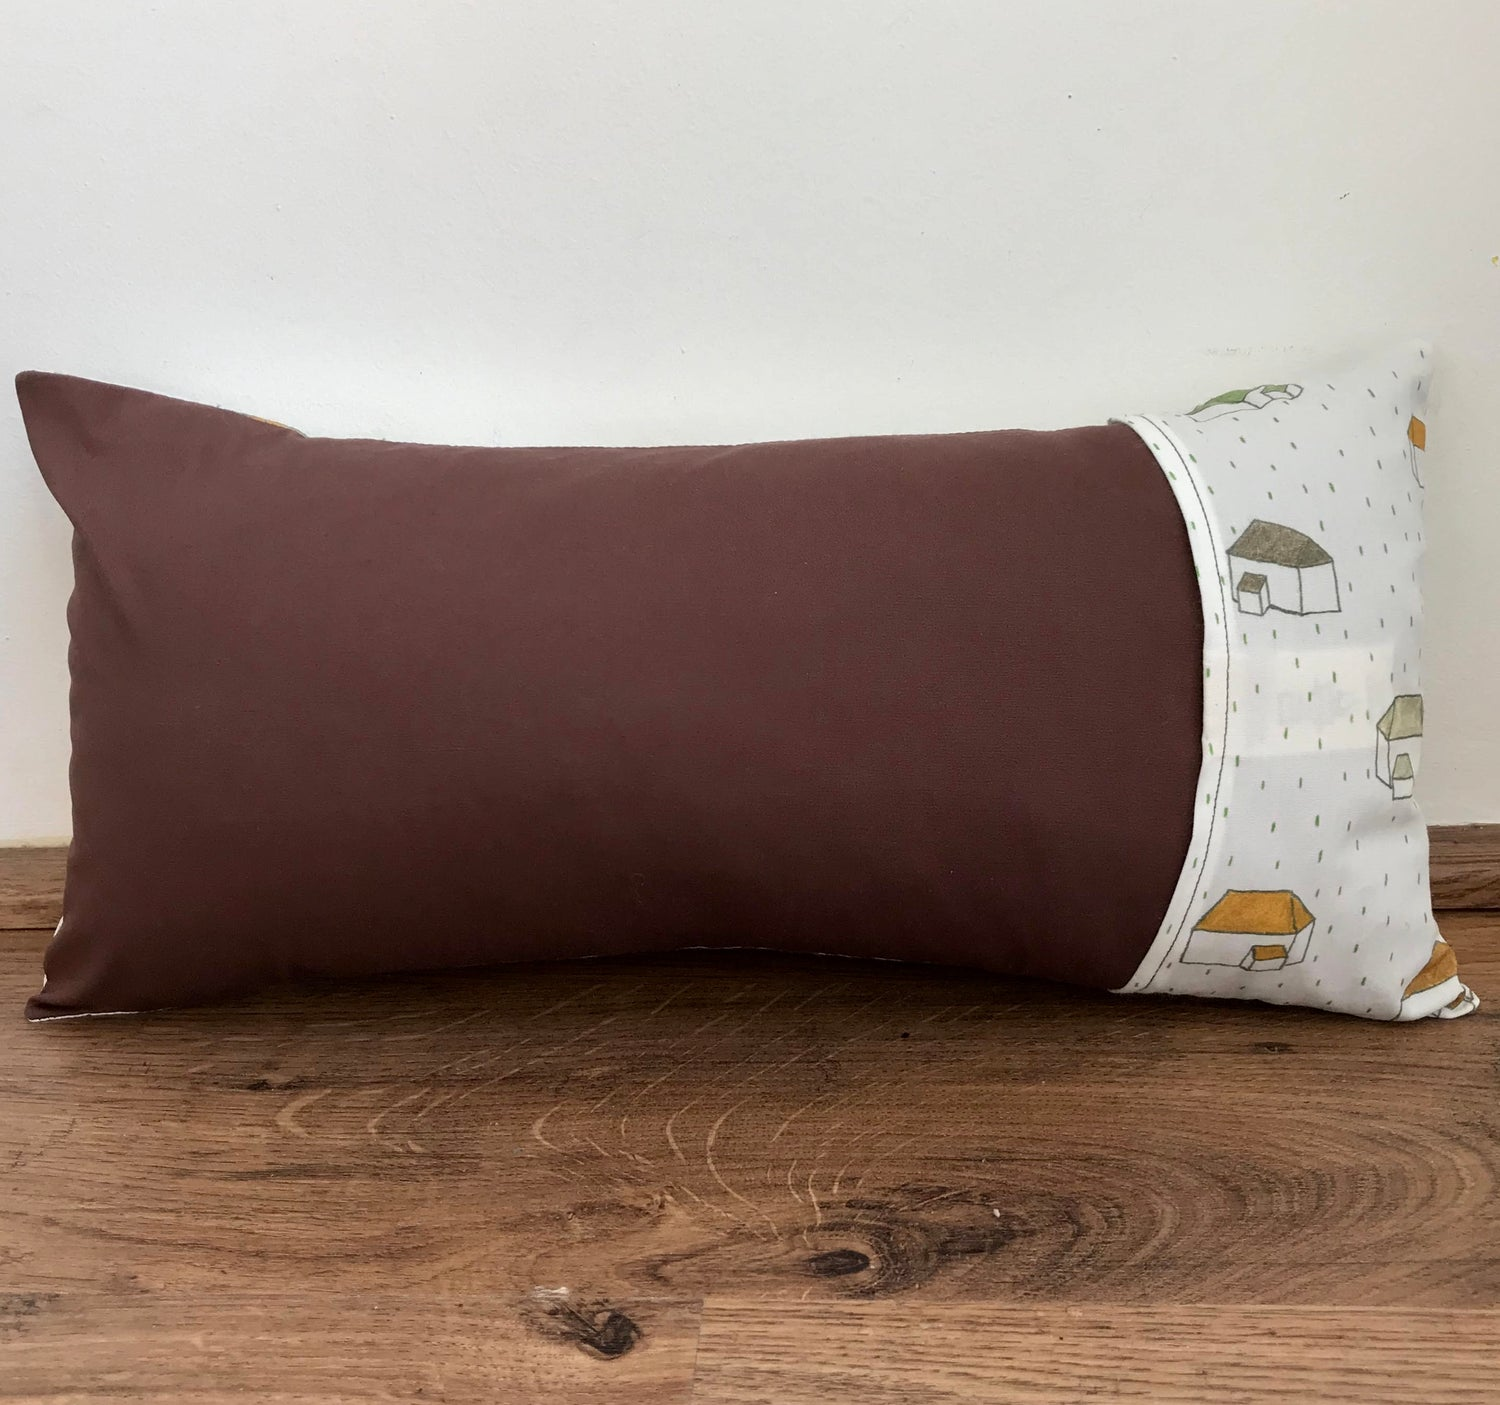 Image of Confinement pillow.